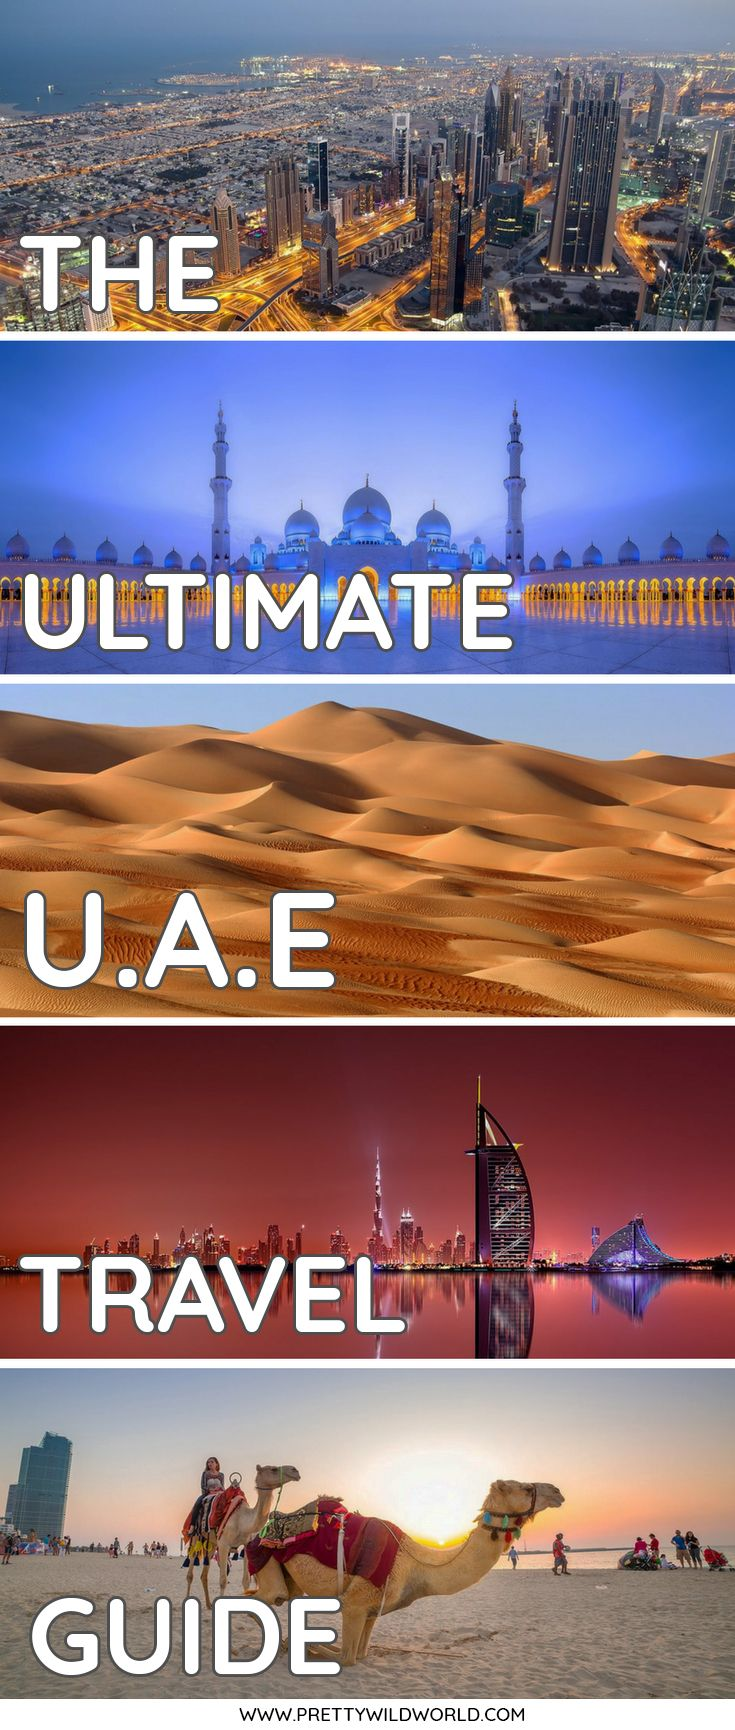 #UAE #MIDDLEEAST #ASIA #TRAVEL   United Arab Emirates travel guide   UAE points of interest   things to do in UAE   What to eat in UAE   UAE travel   Places to visit in UAE   UAE holidays   What to do in UAE   Visit UAE   Trip to UAE   Holidays in UAE   Places to see in UAE